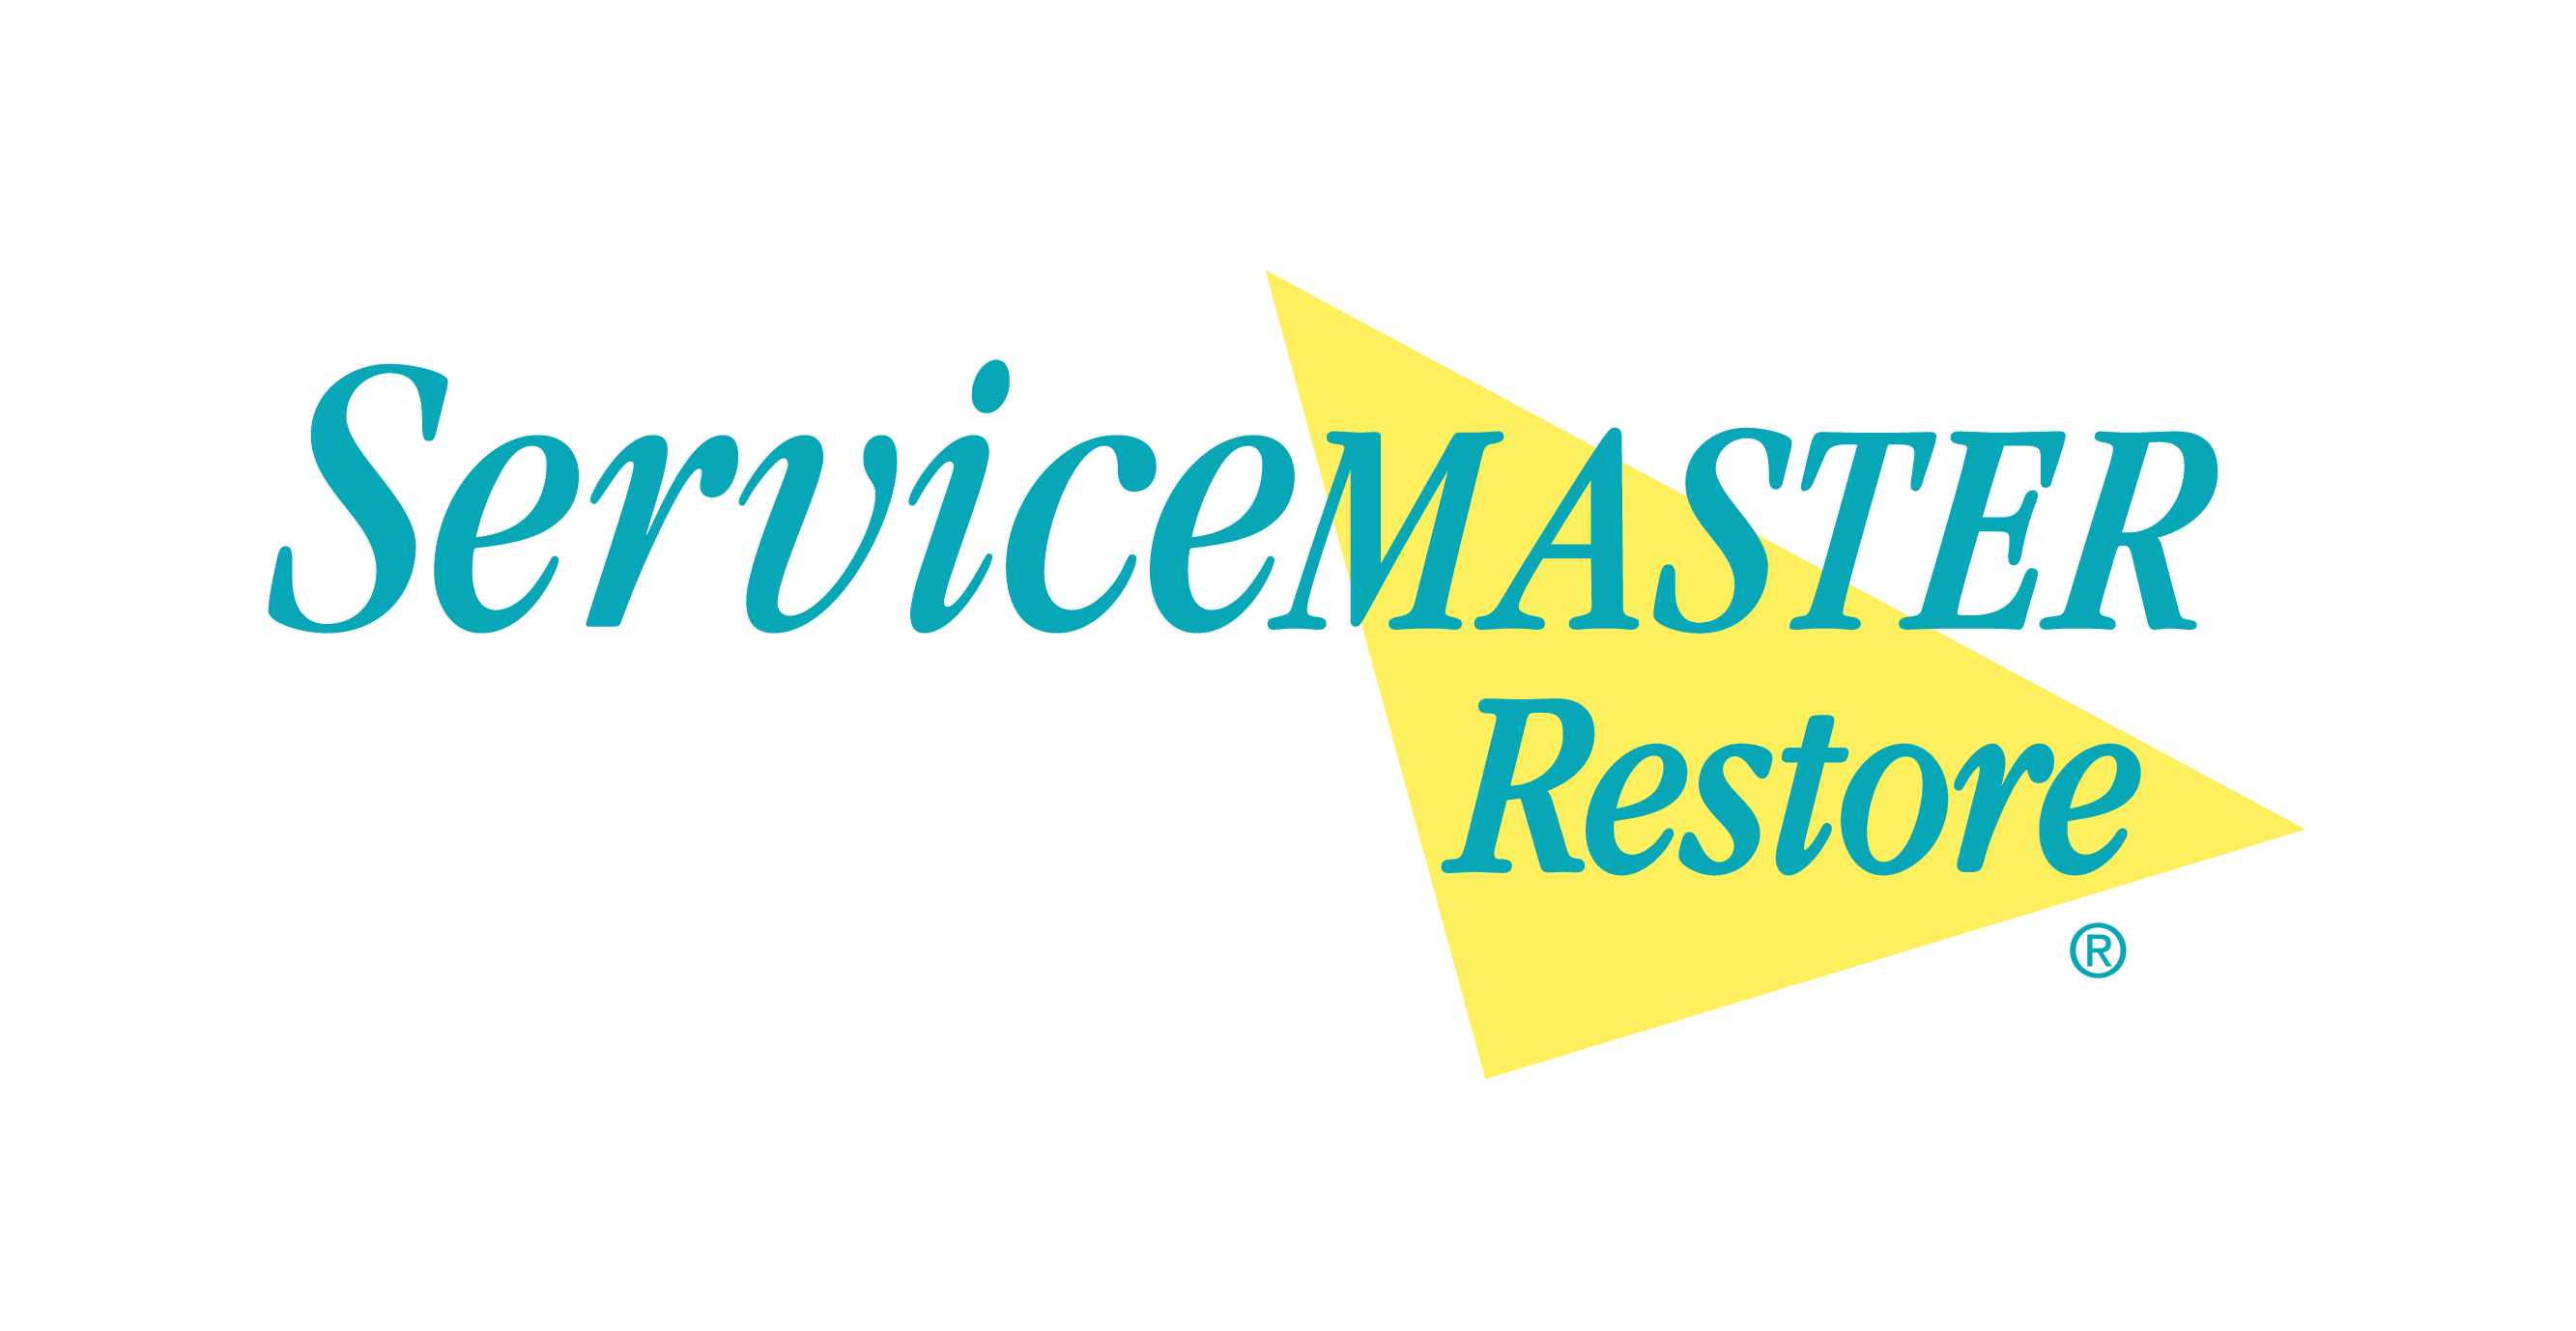 Servicemaster Clean Introduces A New Brand Name For